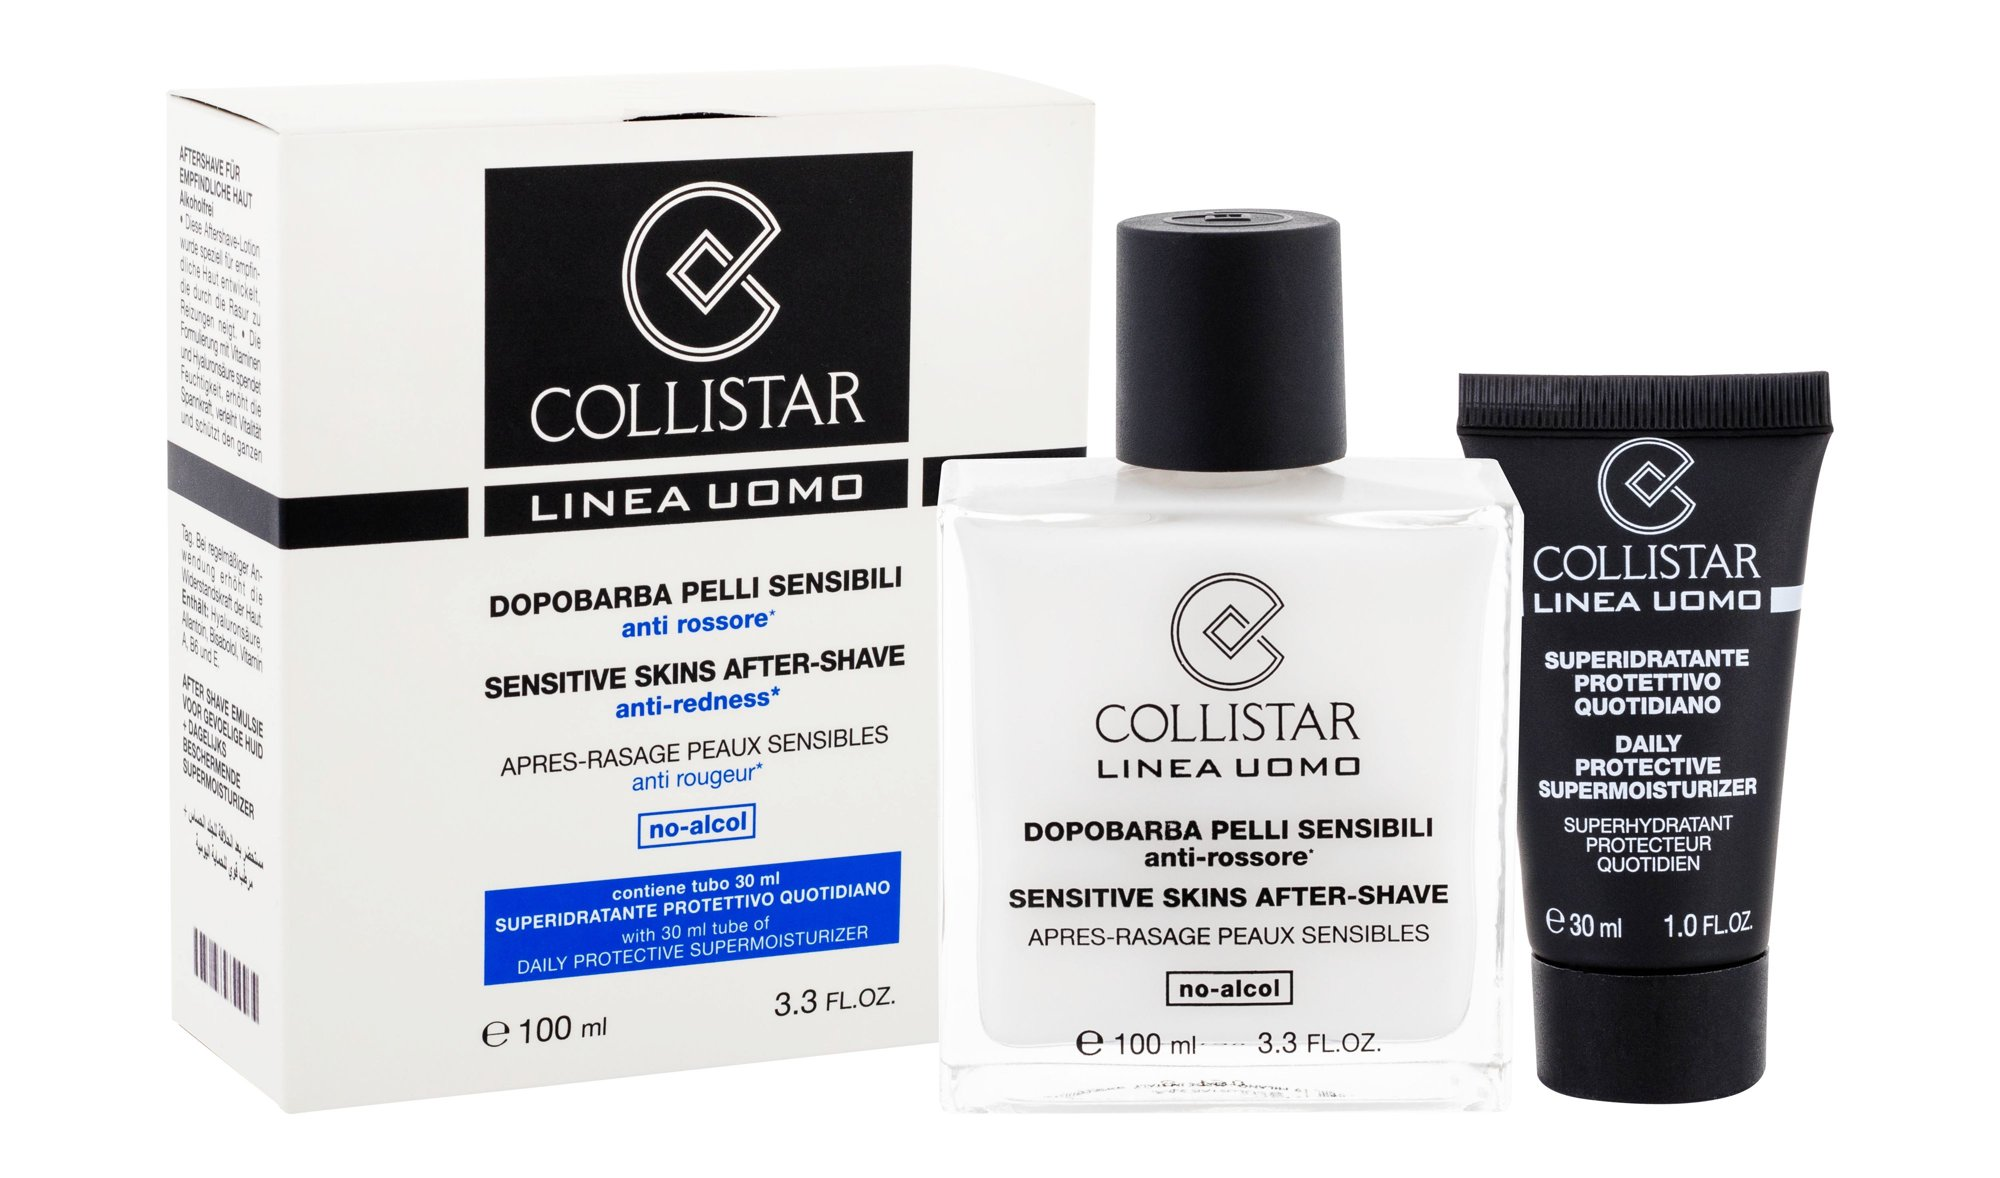 Collistar Linea Uomo Cosmetic 100ml